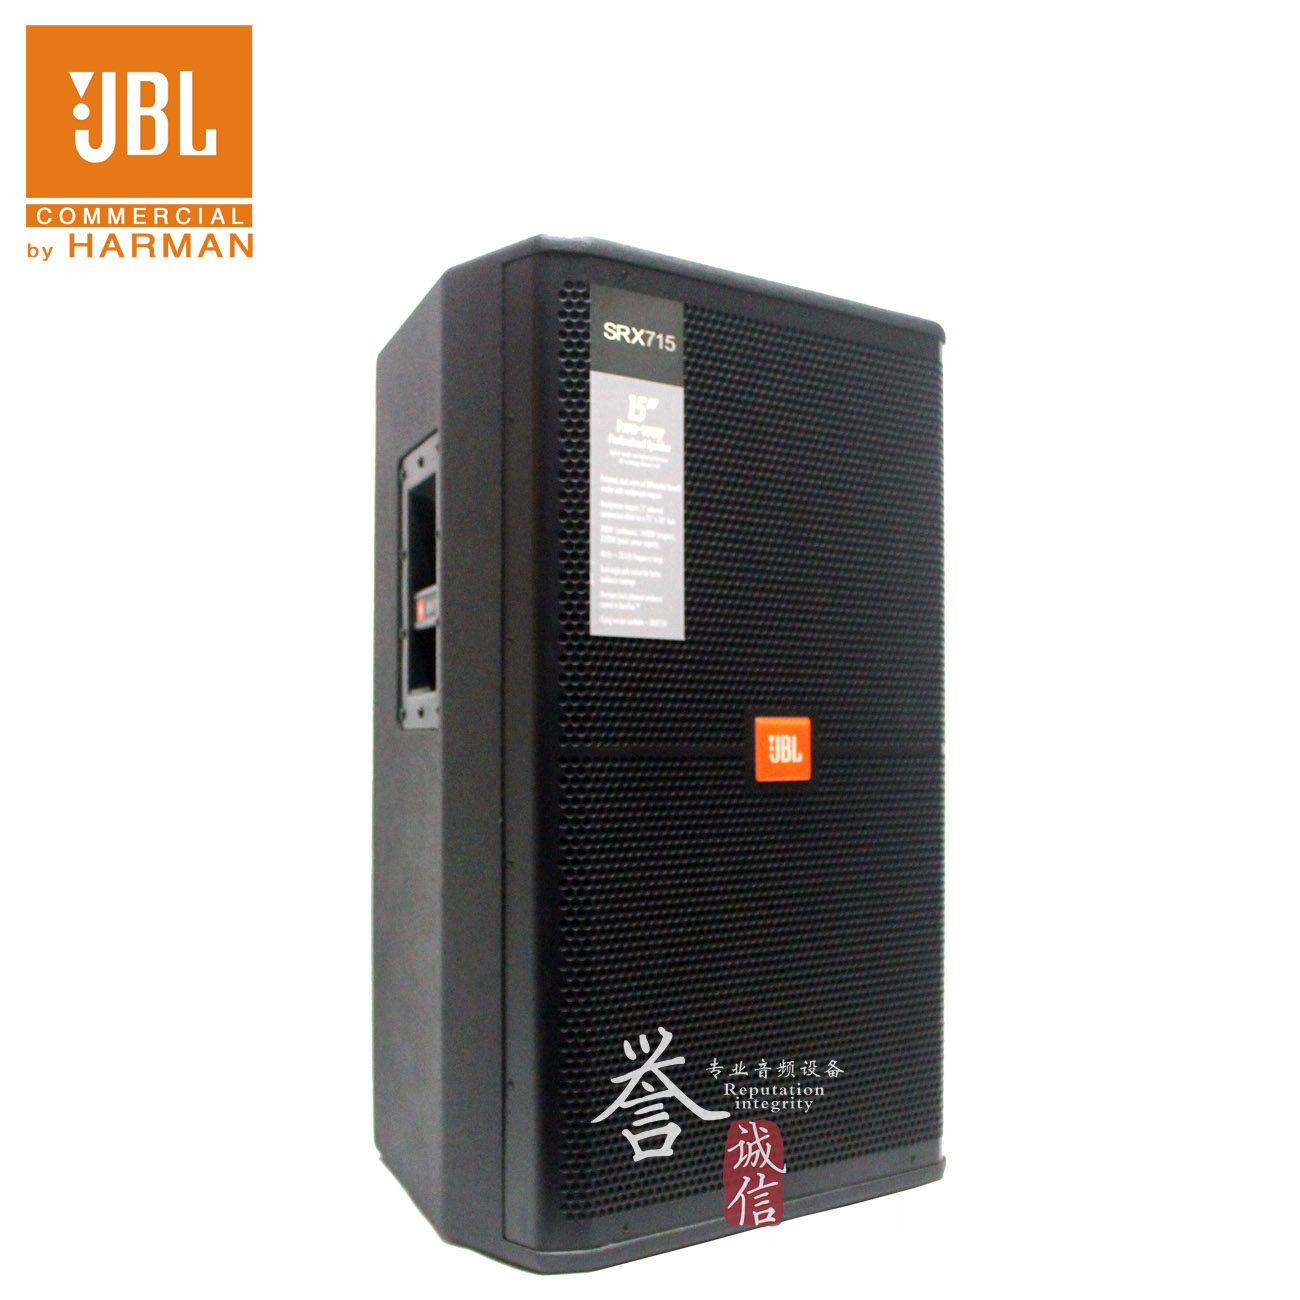 JBL SRX715 Stage Performance Sound Box Multifunctional Conference Performance Audio Messaging Anti-counterfeiting